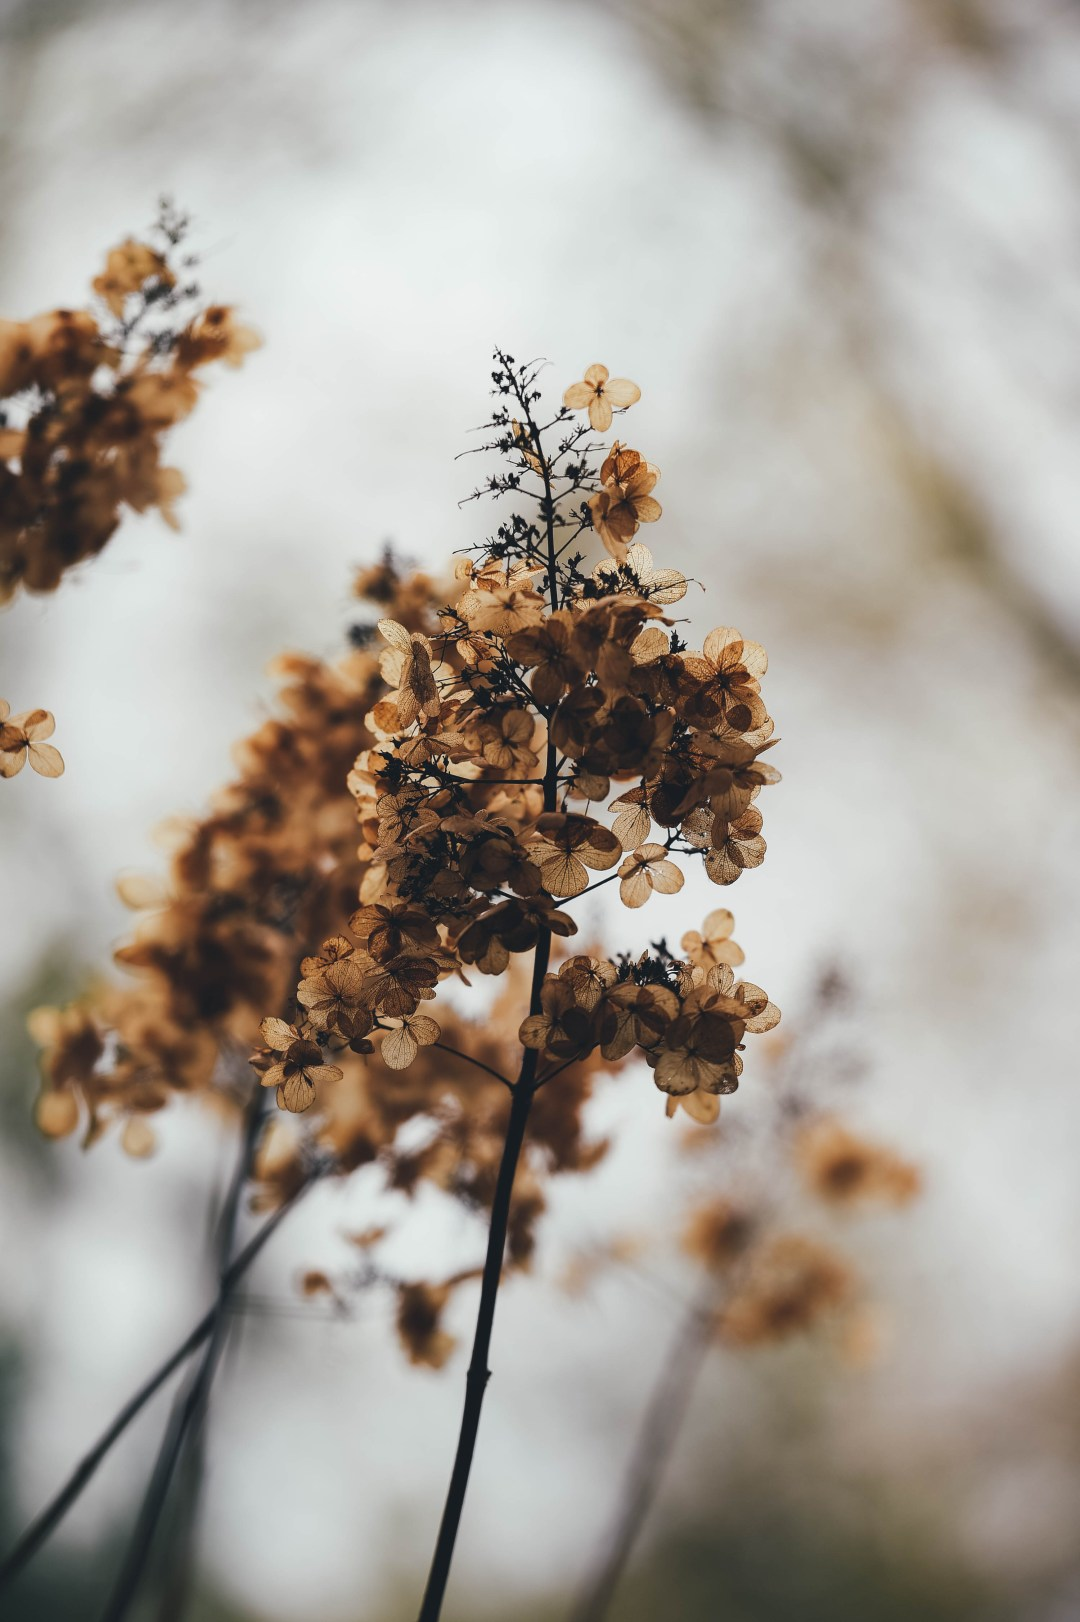 Fall Of The Autumn Hd Wallpaper Bleak Wilting Hydrangea Photo By Annie Spratt